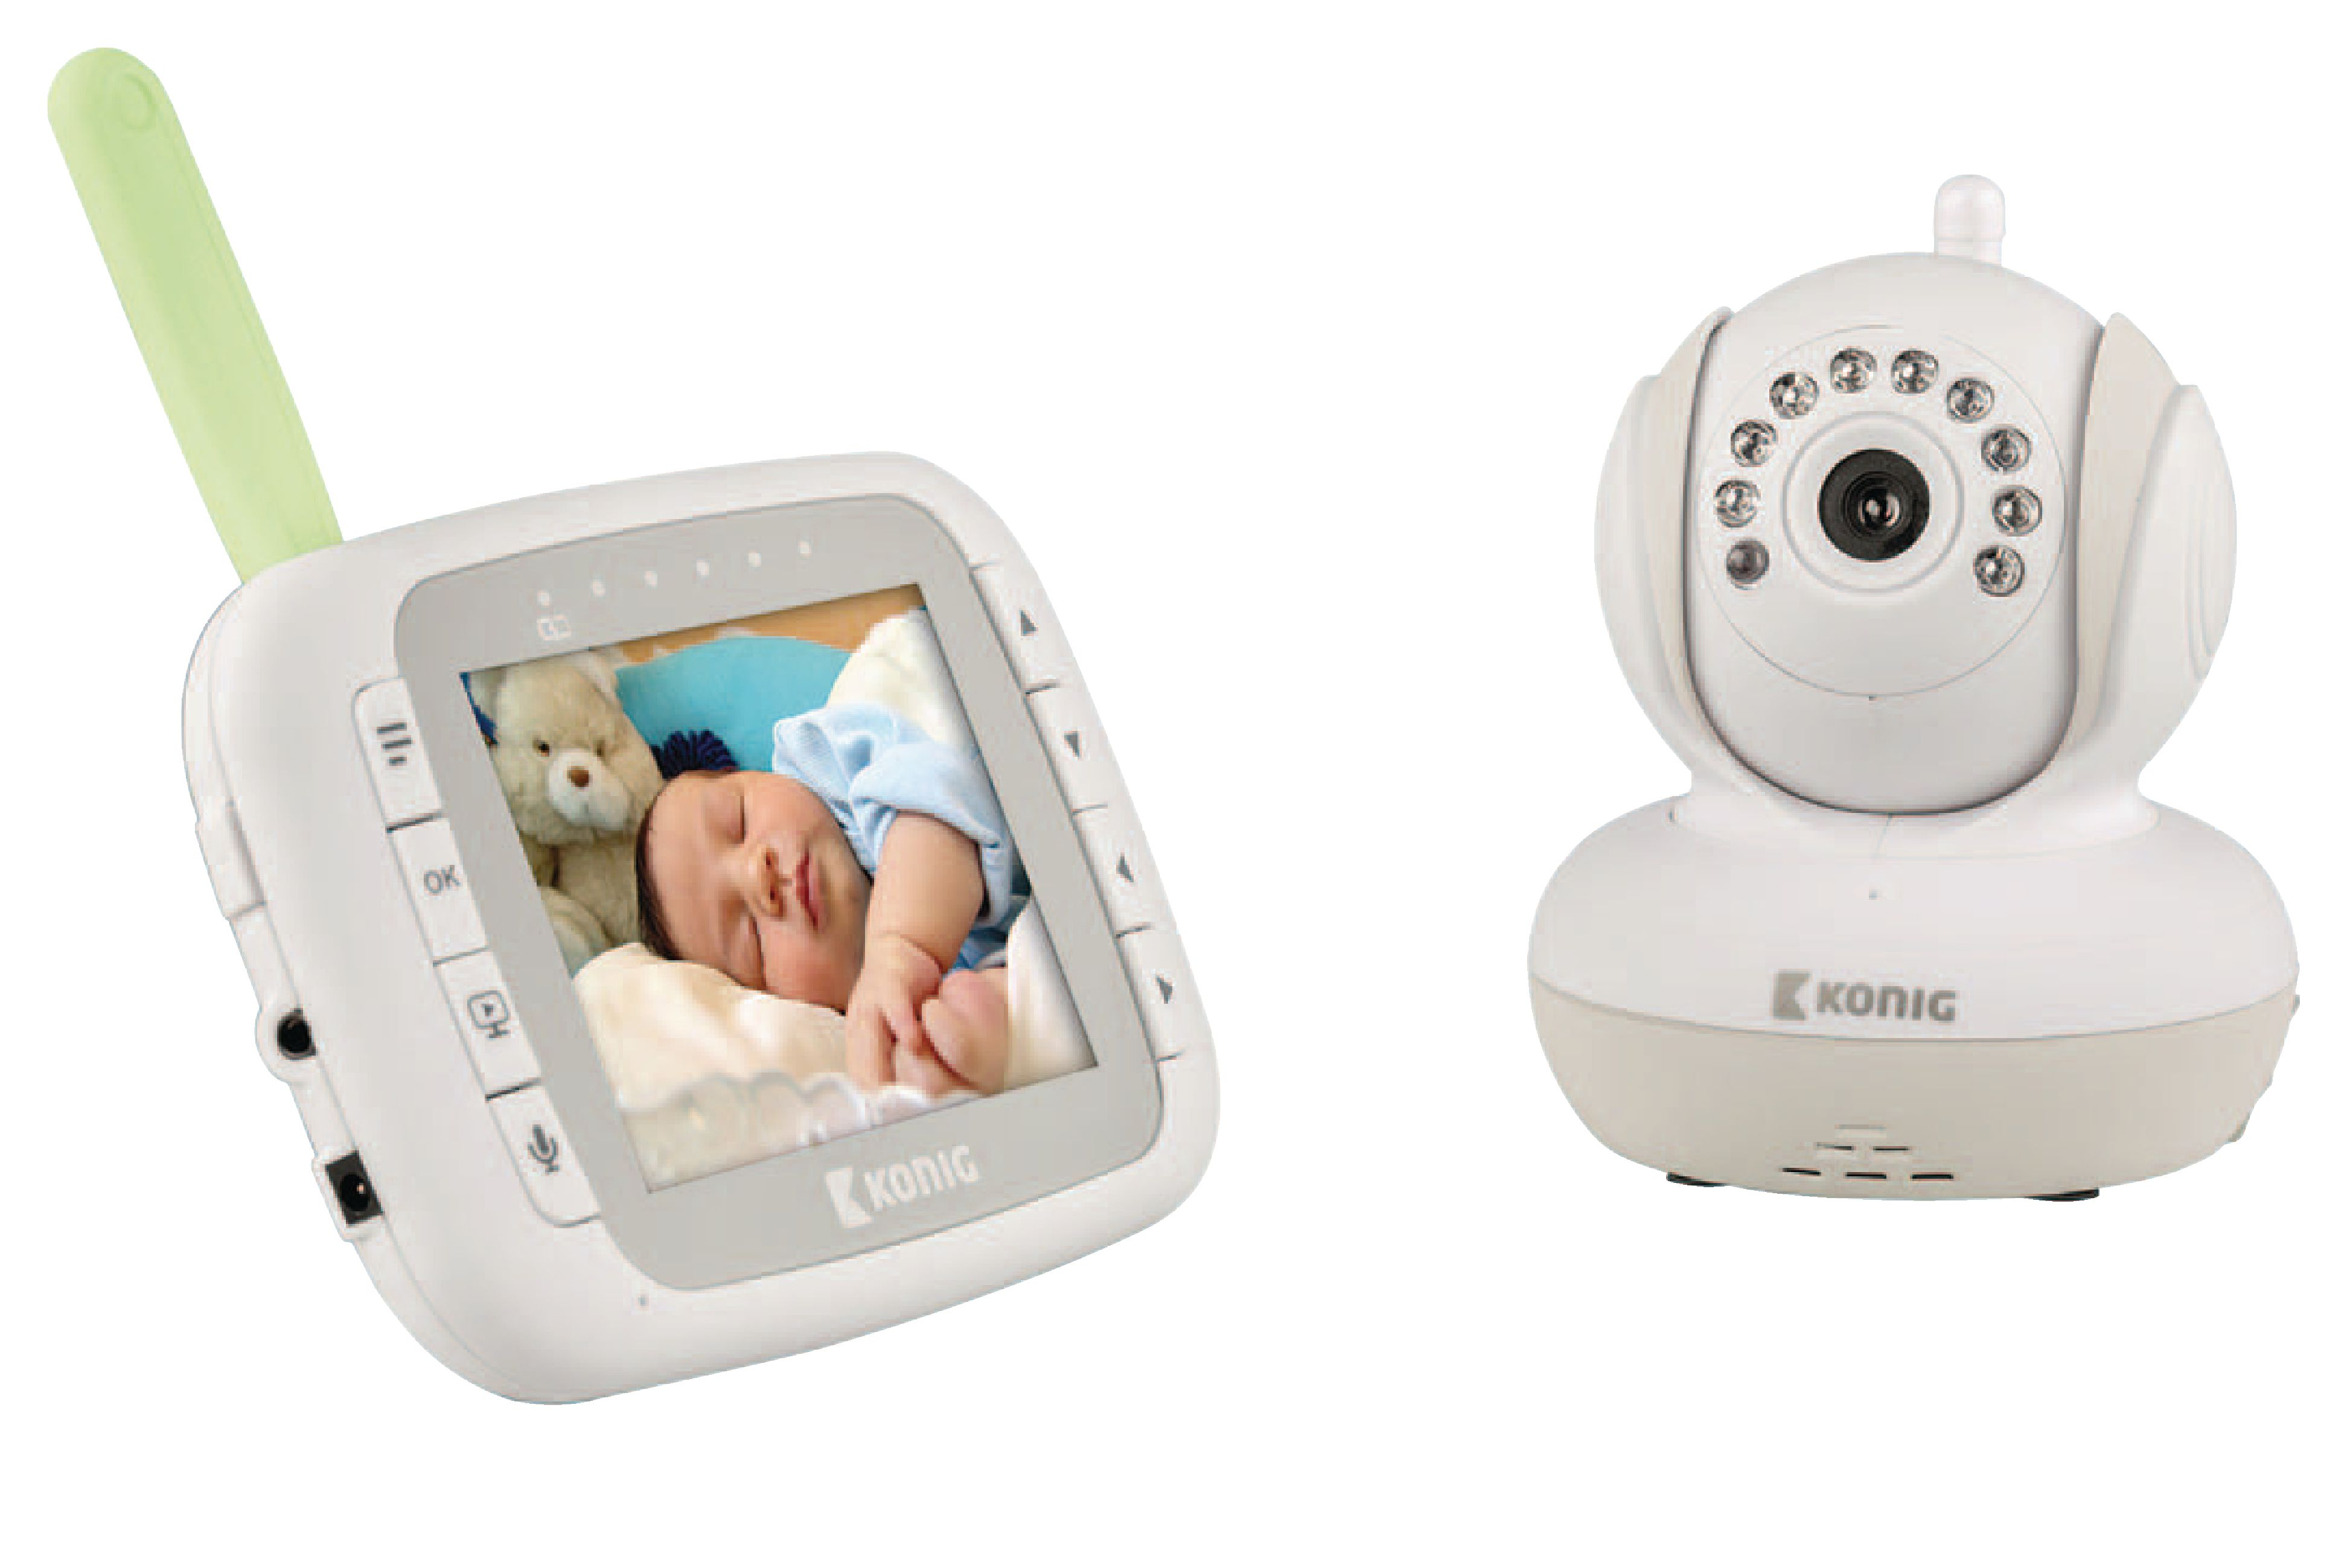 kn bm80 k nig baby monitor audio video 2 4 ghz white grey electronic. Black Bedroom Furniture Sets. Home Design Ideas